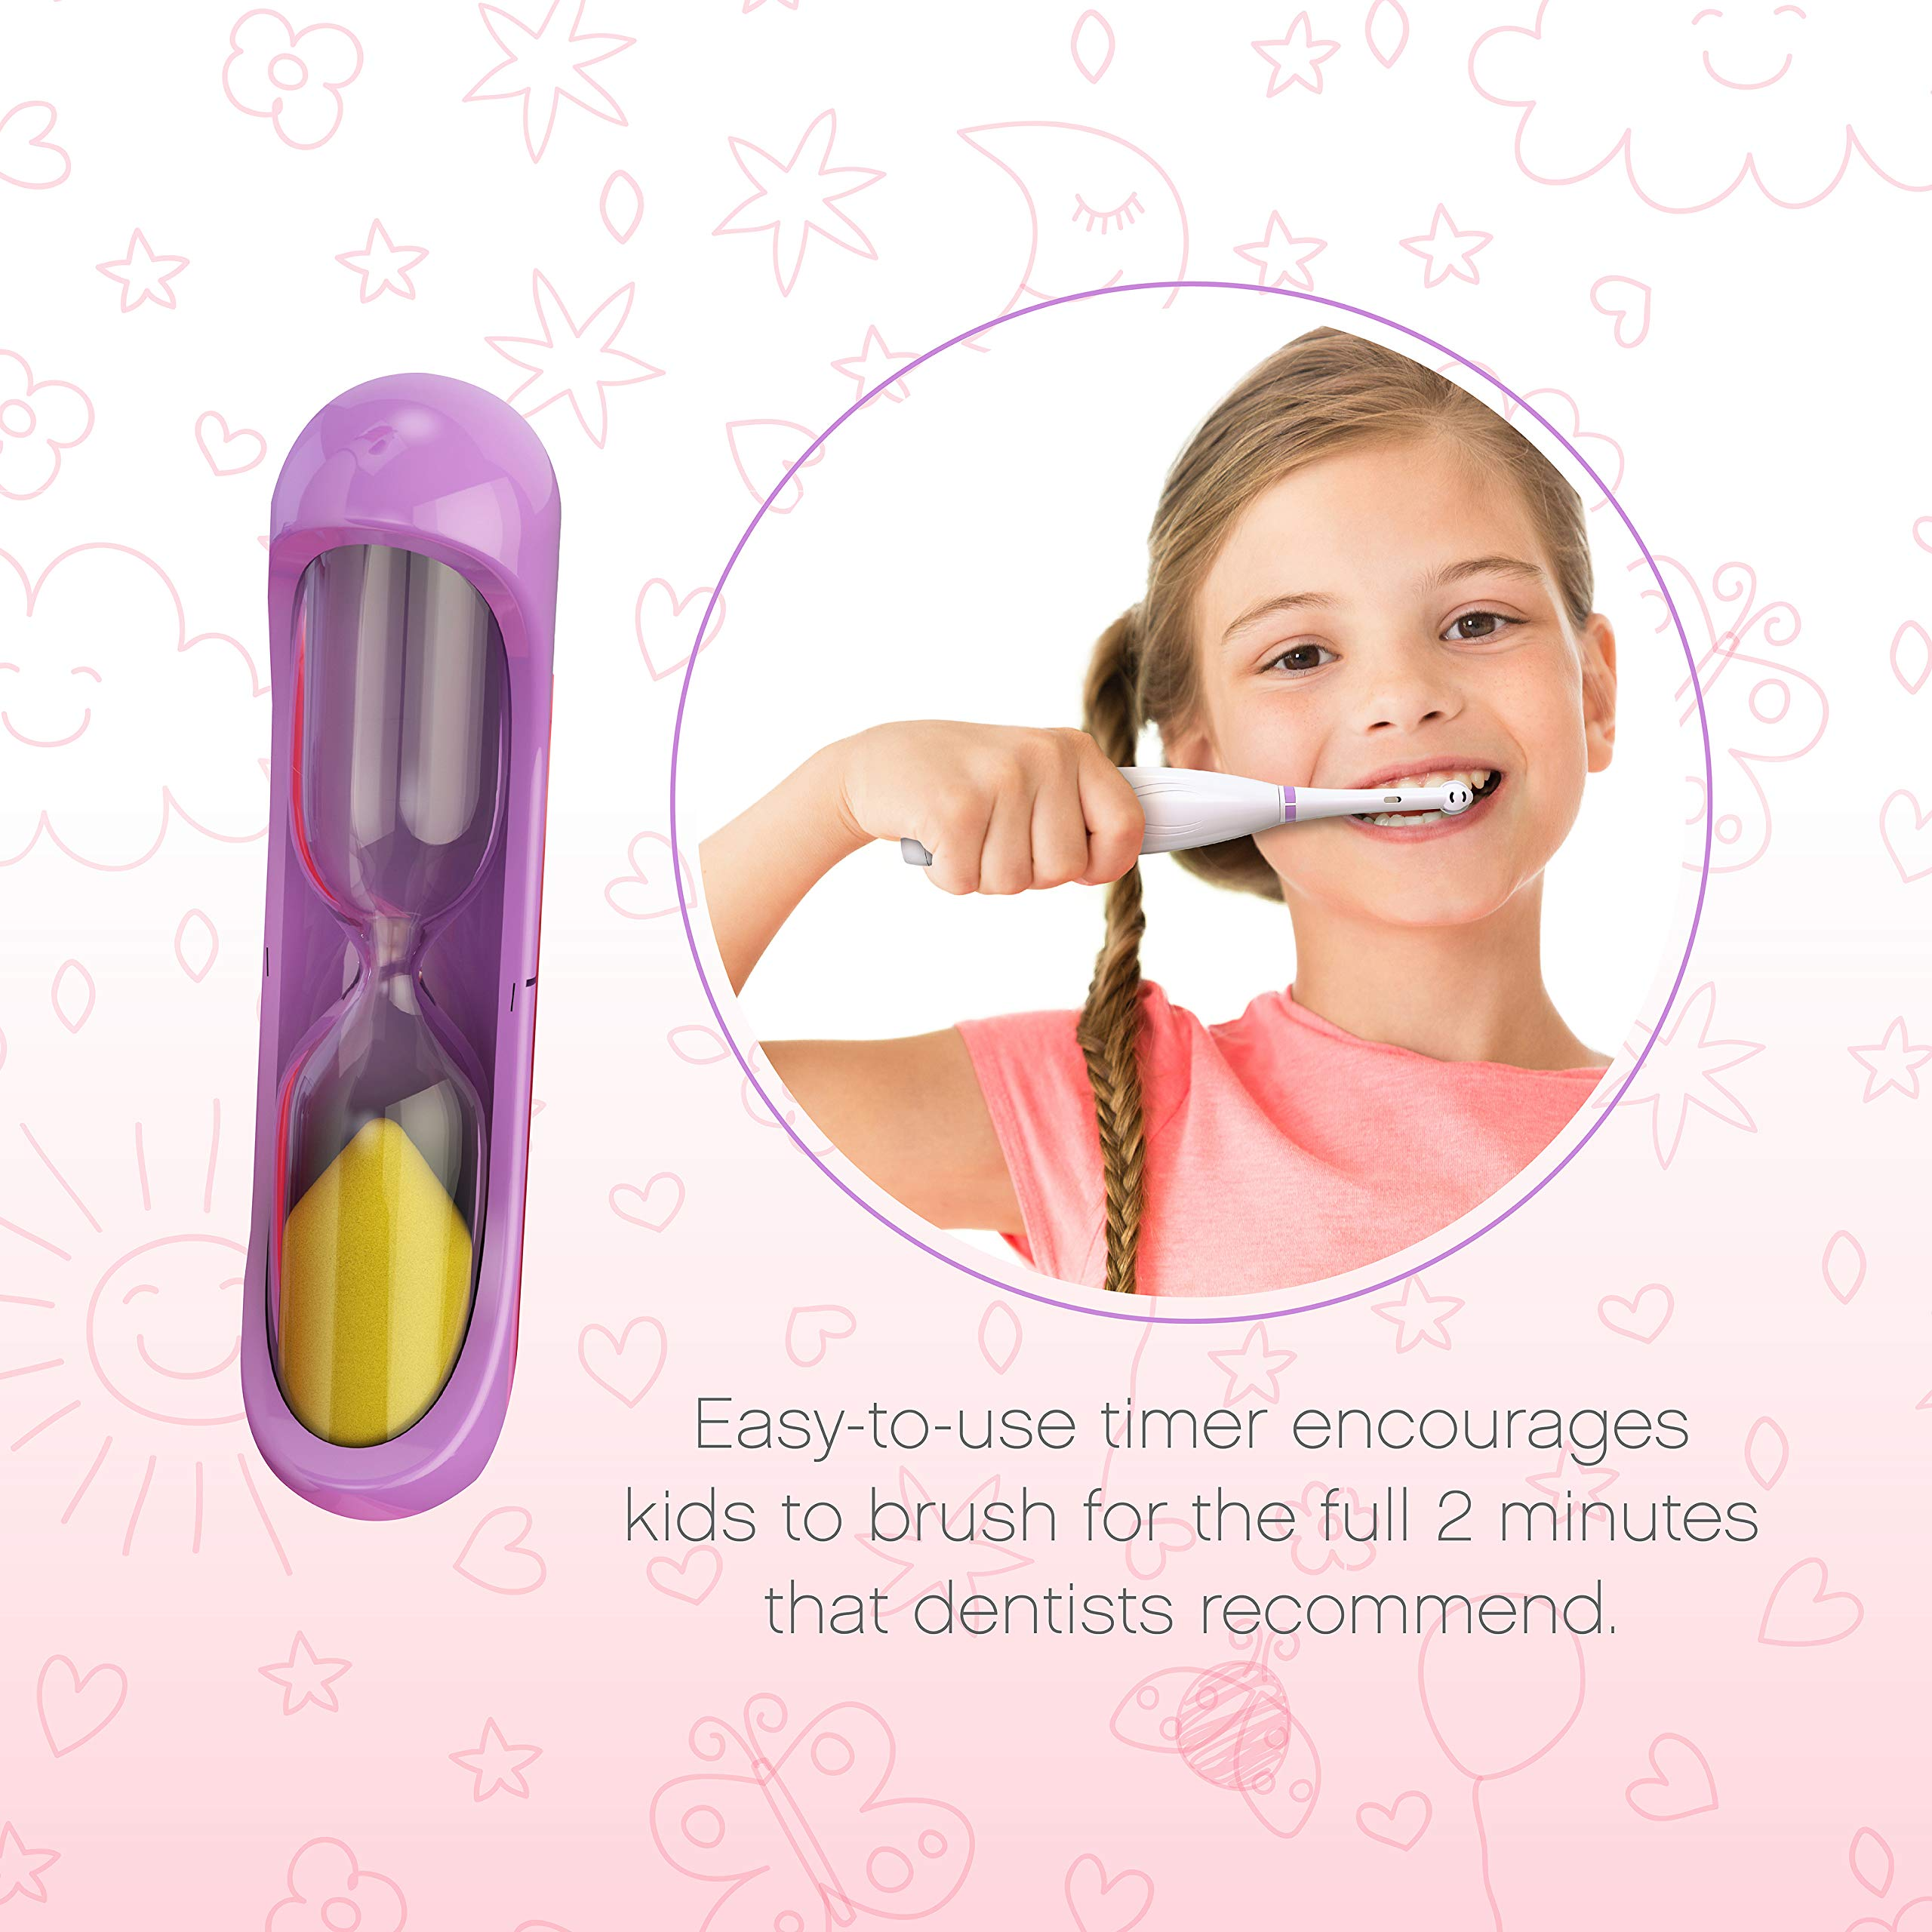 Brusheez Kid's Electric Toothbrush Set - Sparkle the Unicorn - New & Improved with Softer Bristles, Easy-Press Power Button, 2 Brush Heads, Cute Animal Cover, Sand Timer, Rinse Cup & Storage Base by Brusheez (Image #3)